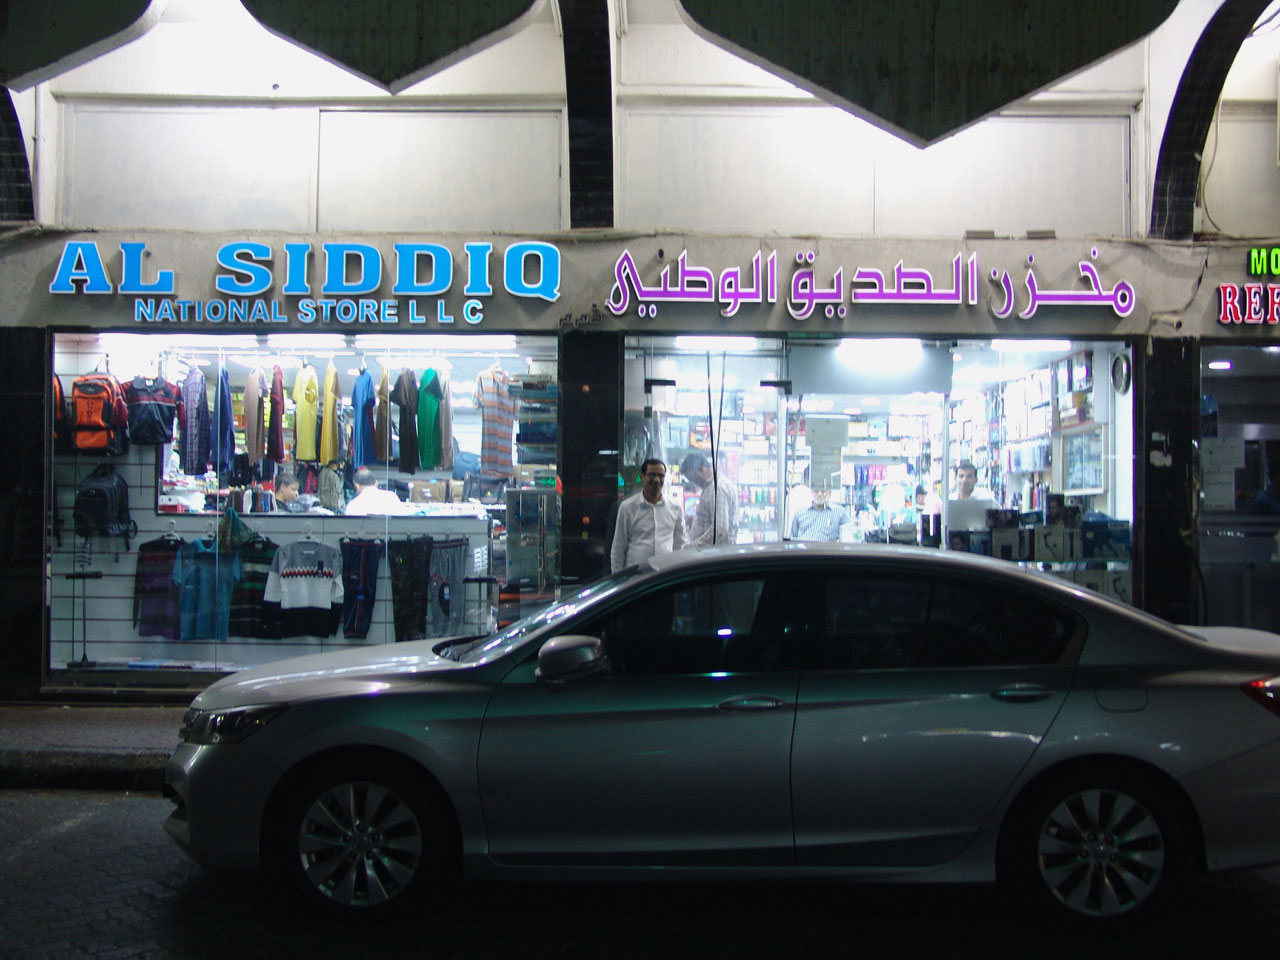 Al Siddiq International Store L.L.c - 1.jpg